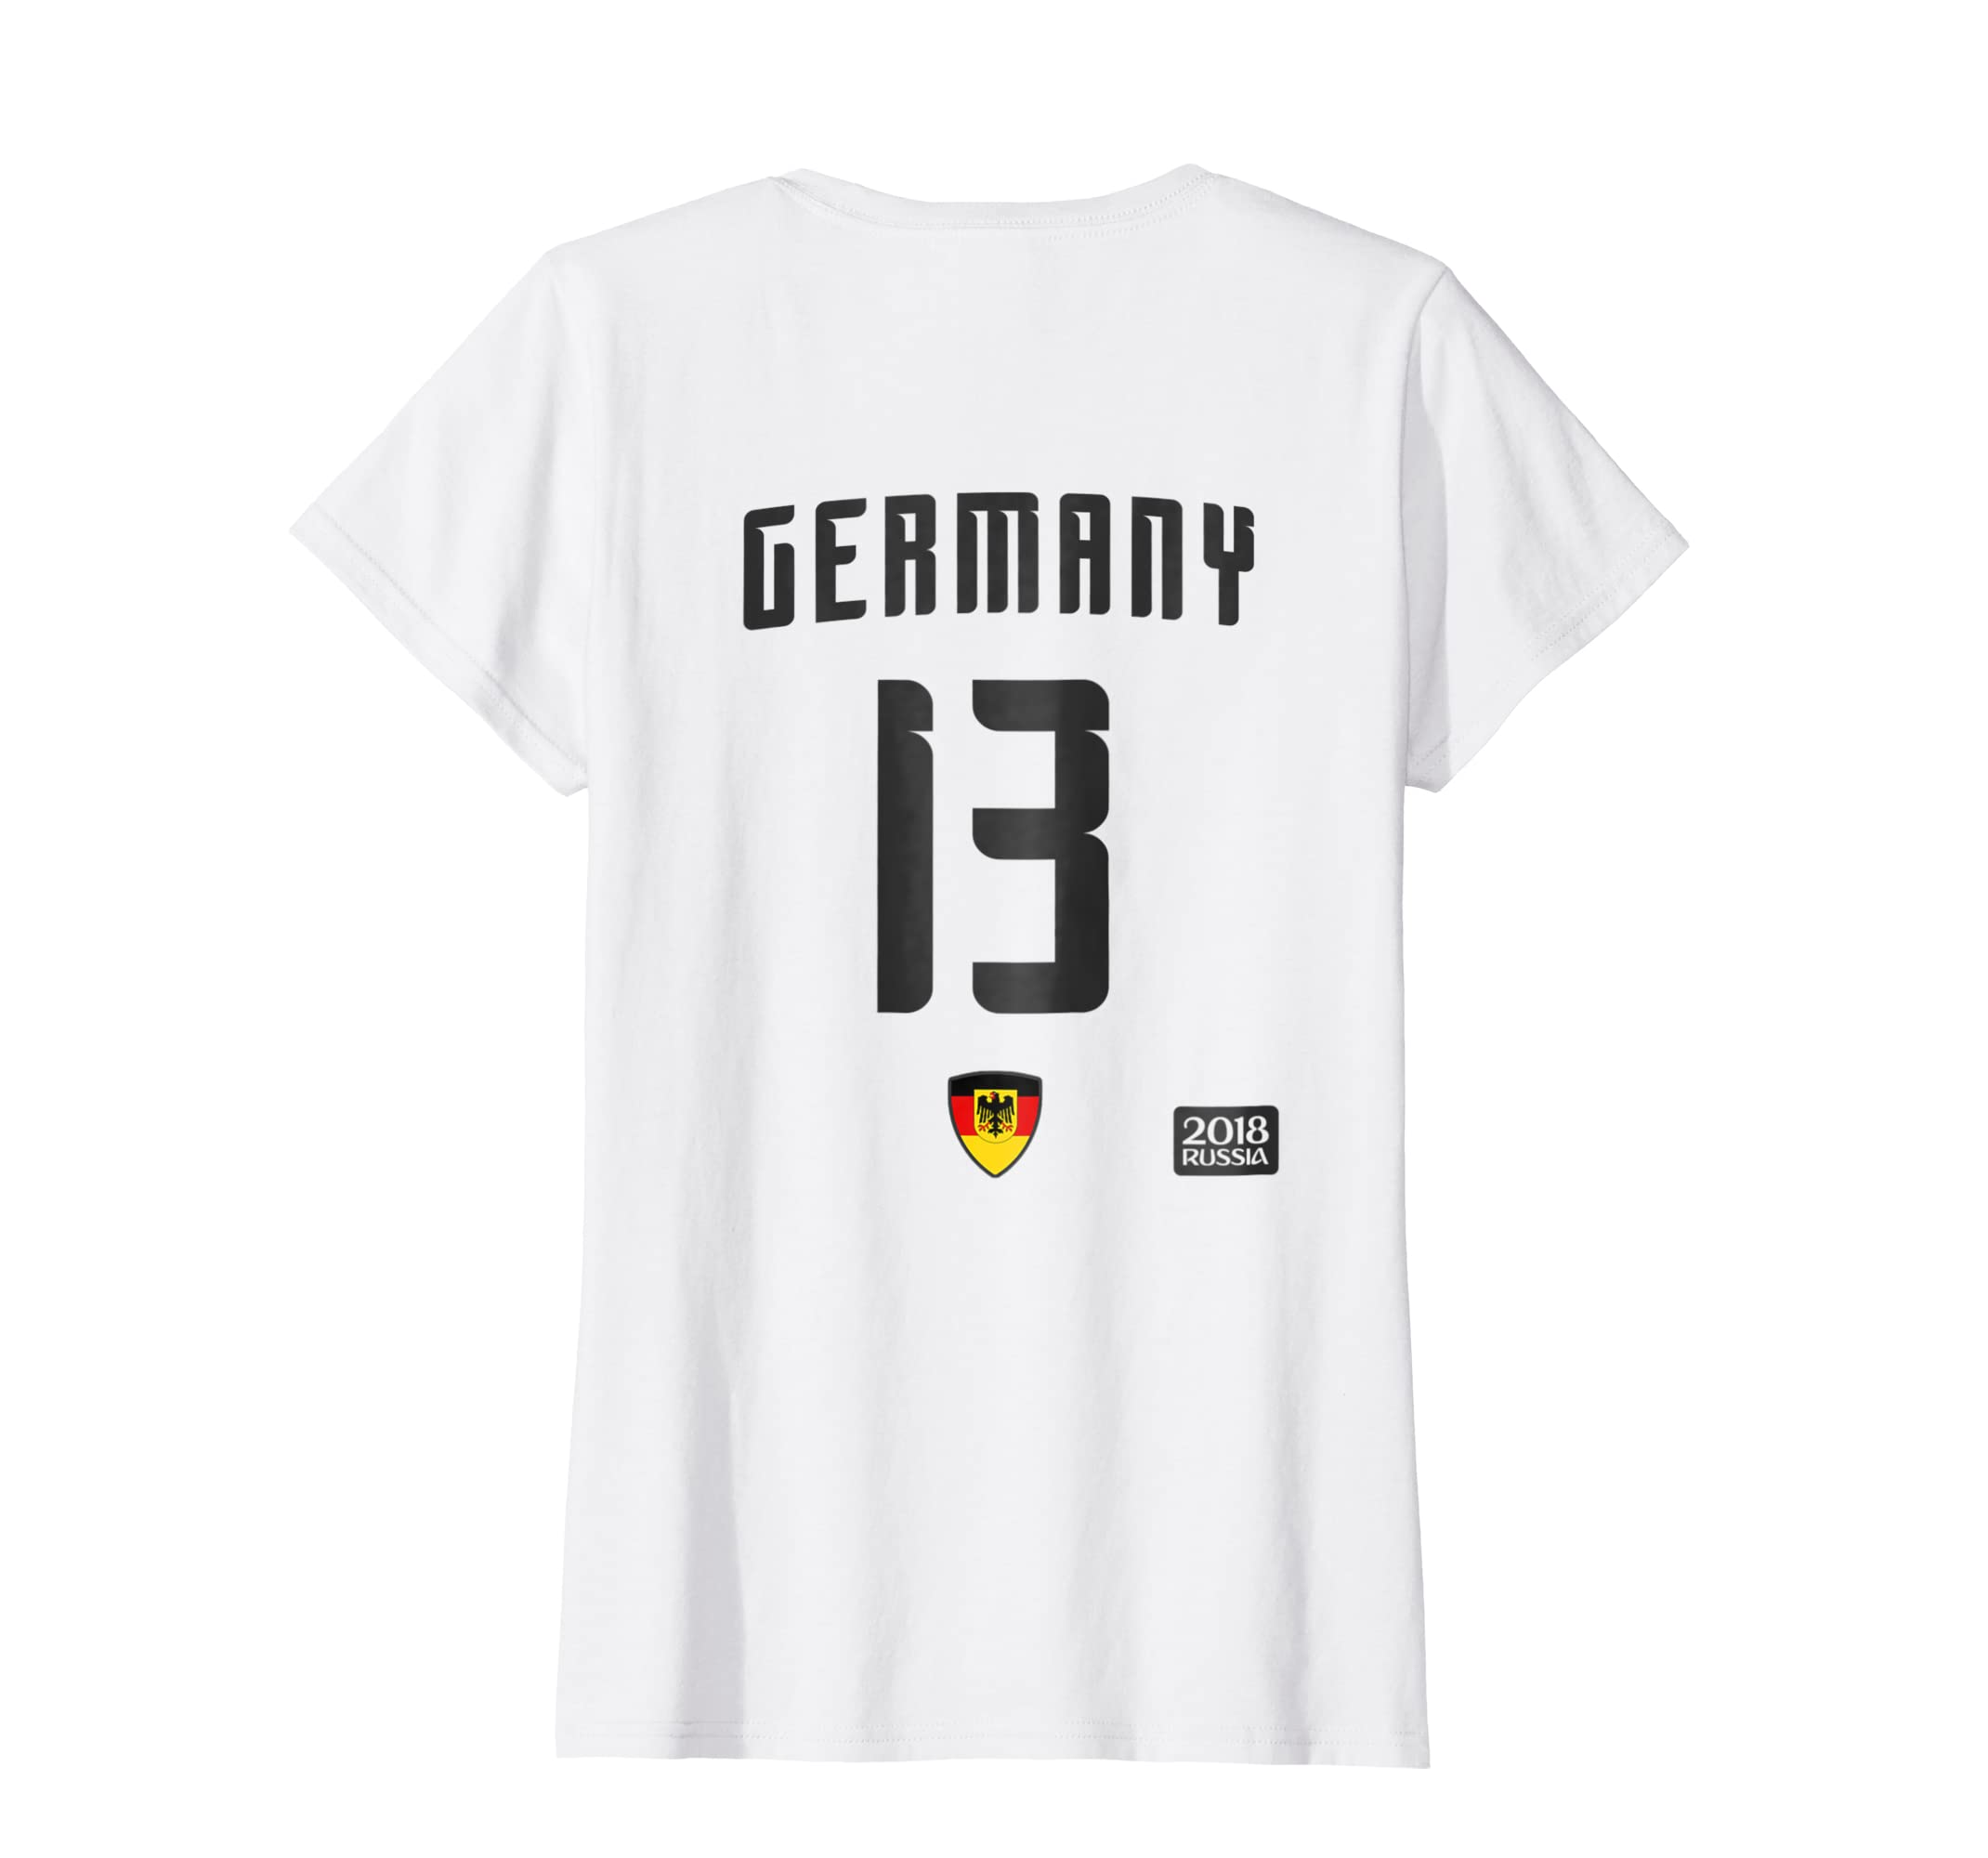 4981d481f8d Amazon.com  Germany 13 White Soccer T-Shirt - Football 2018 Team Jersey   Clothing